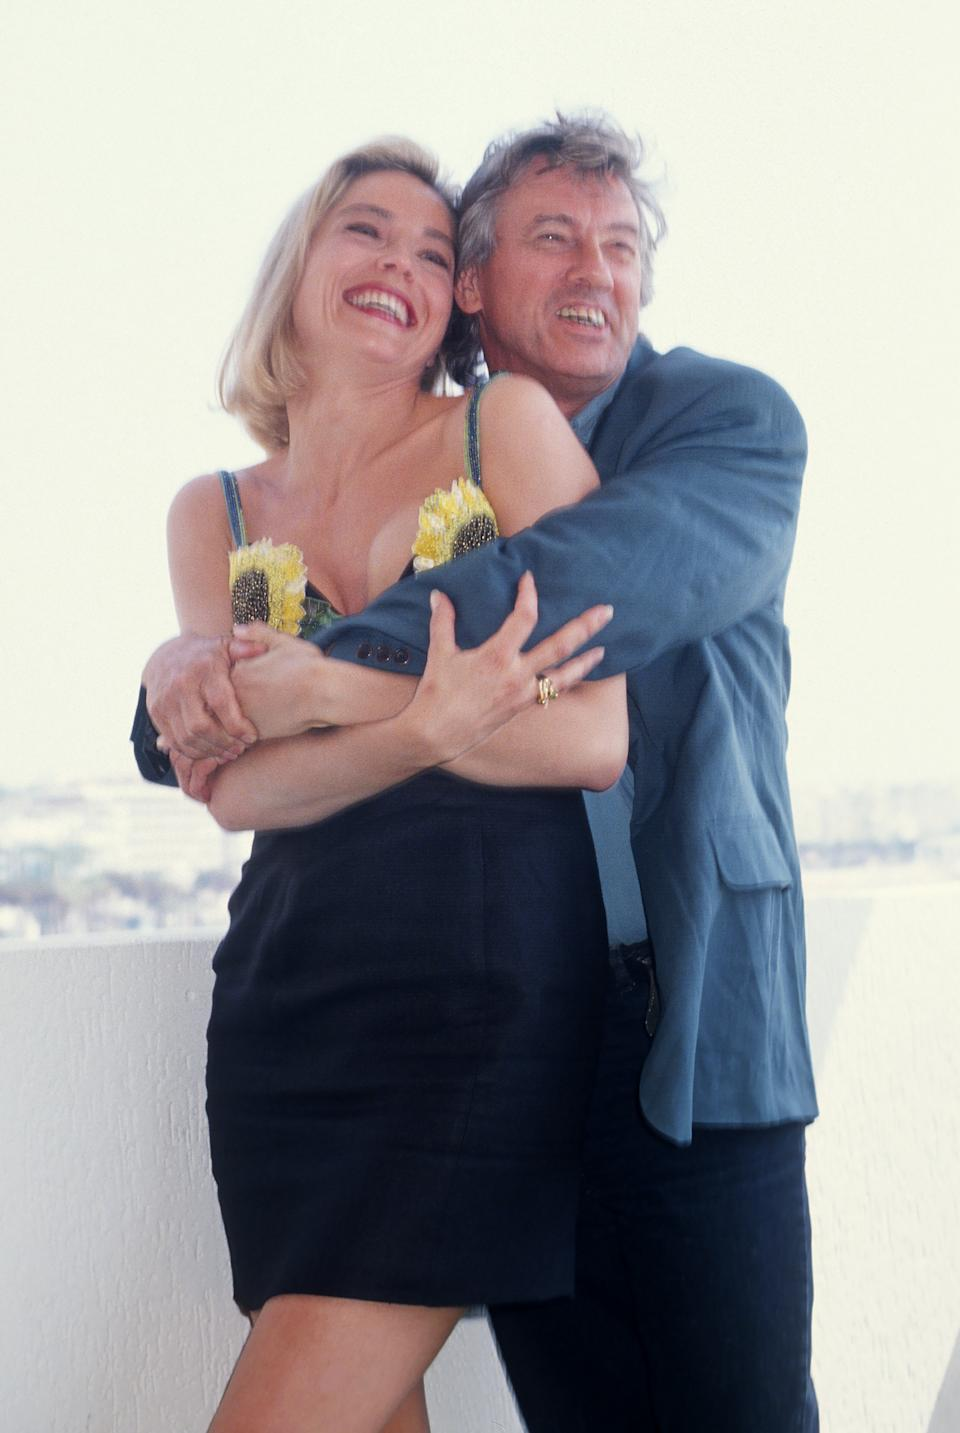 CANNES, FRANCE MAY 1992: Sharon Stone and Paul Verhoeven attend the 45th Cannes film Festival in May 1992, in Cannes, France. (Photo by FocKan/WireImage)